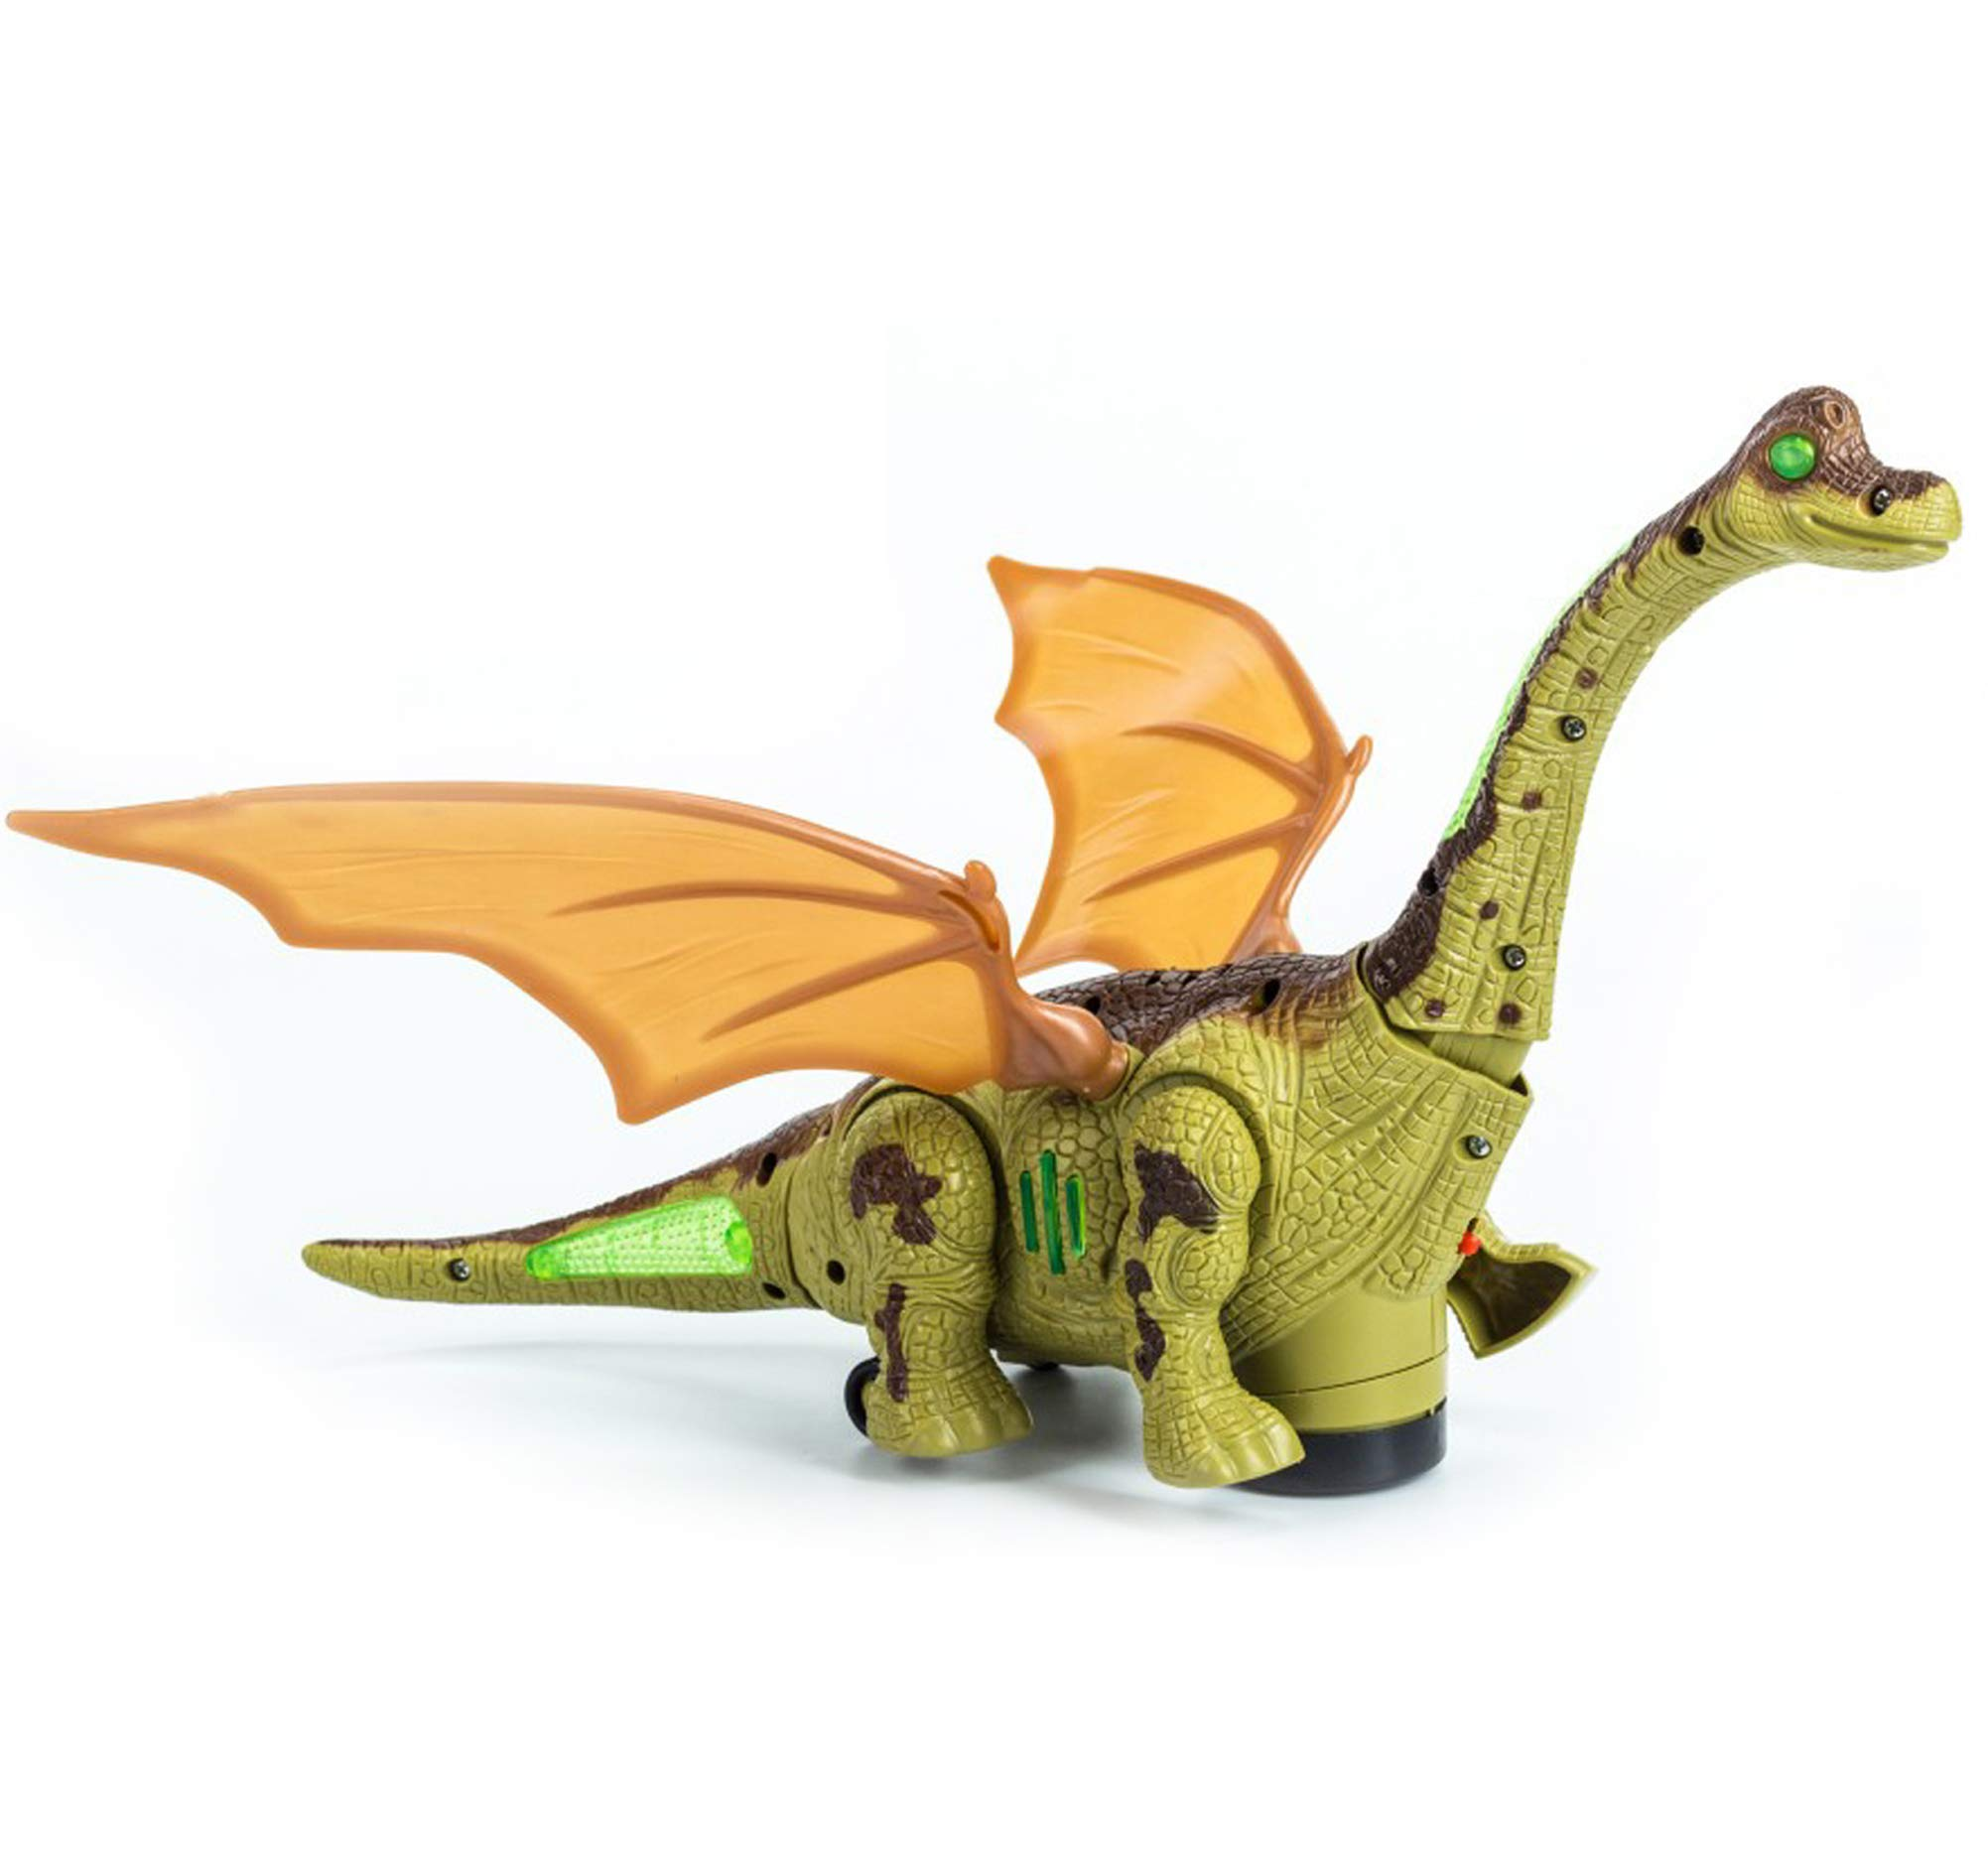 Mrocioa Electronic Dinosaur Toys Walking with Light up&Sound,Big Dino Action Figure 40cm Long for Toddler Boys,Shaking its Tail and Long Neck (Green) by Mrocioa (Image #1)